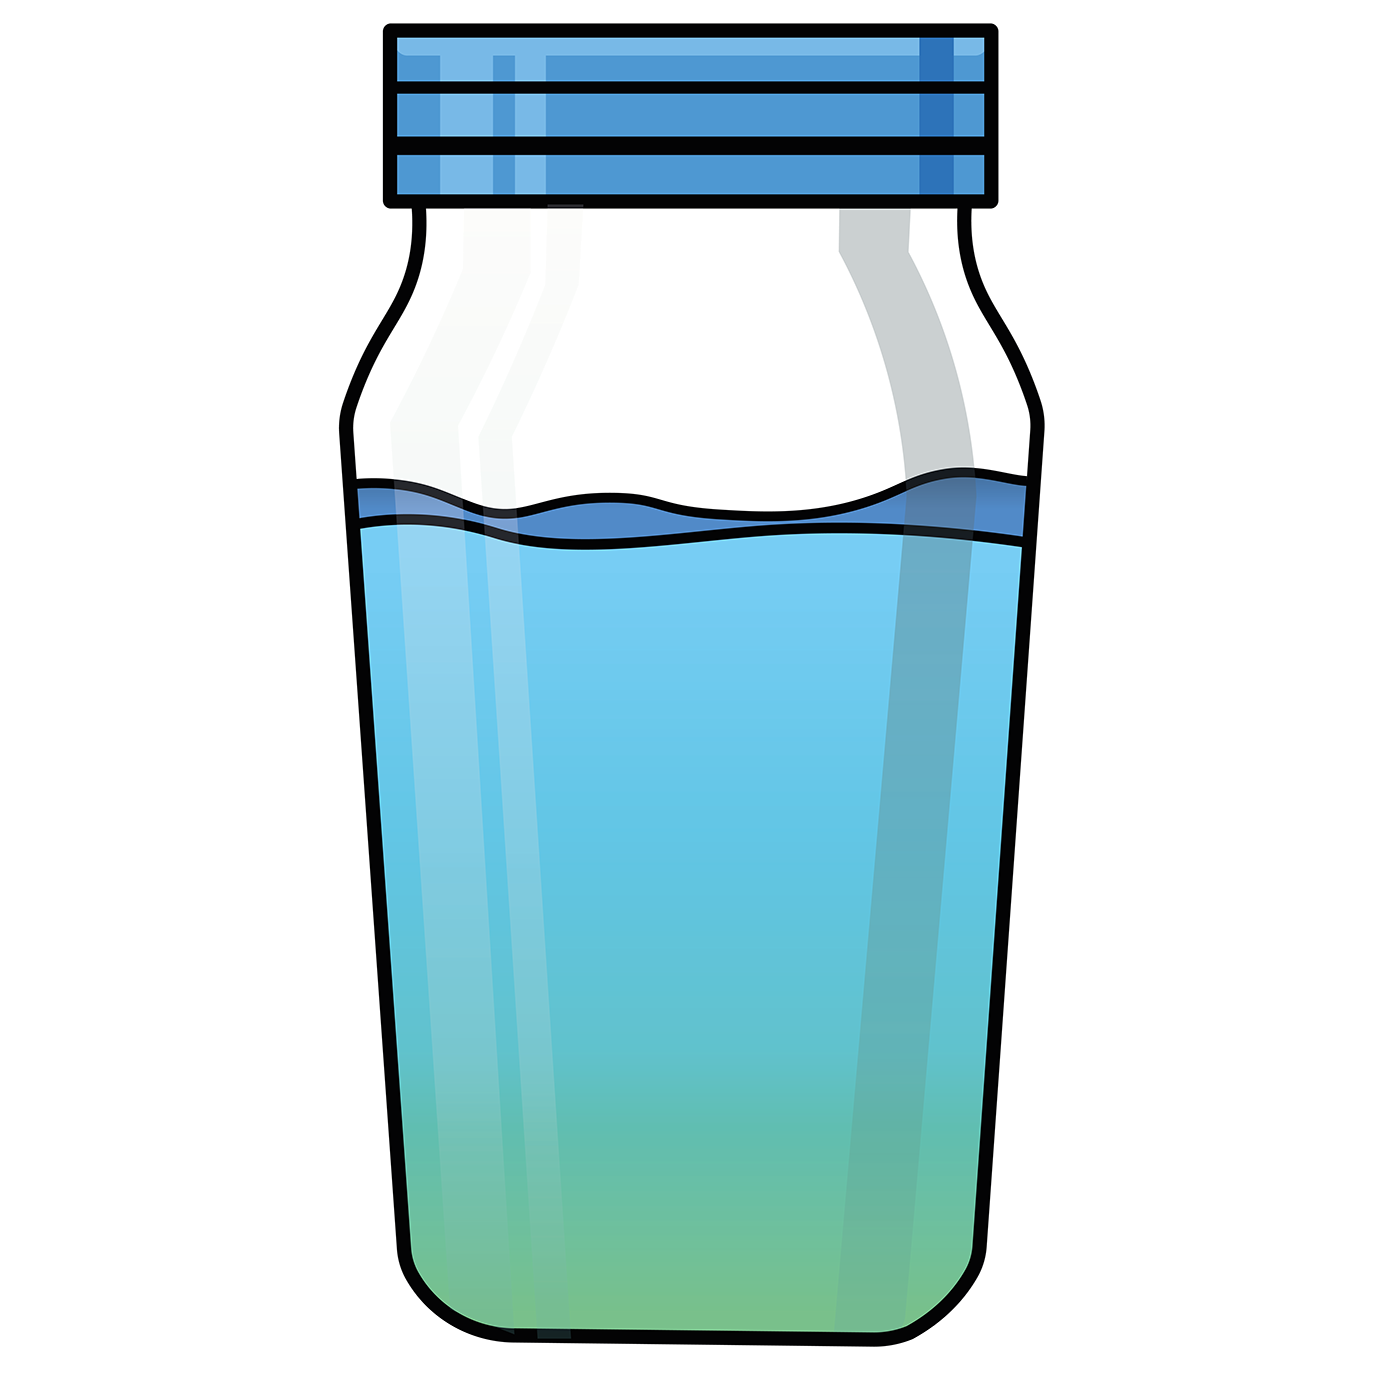 Water clipart juice. Slurp illustration on behance